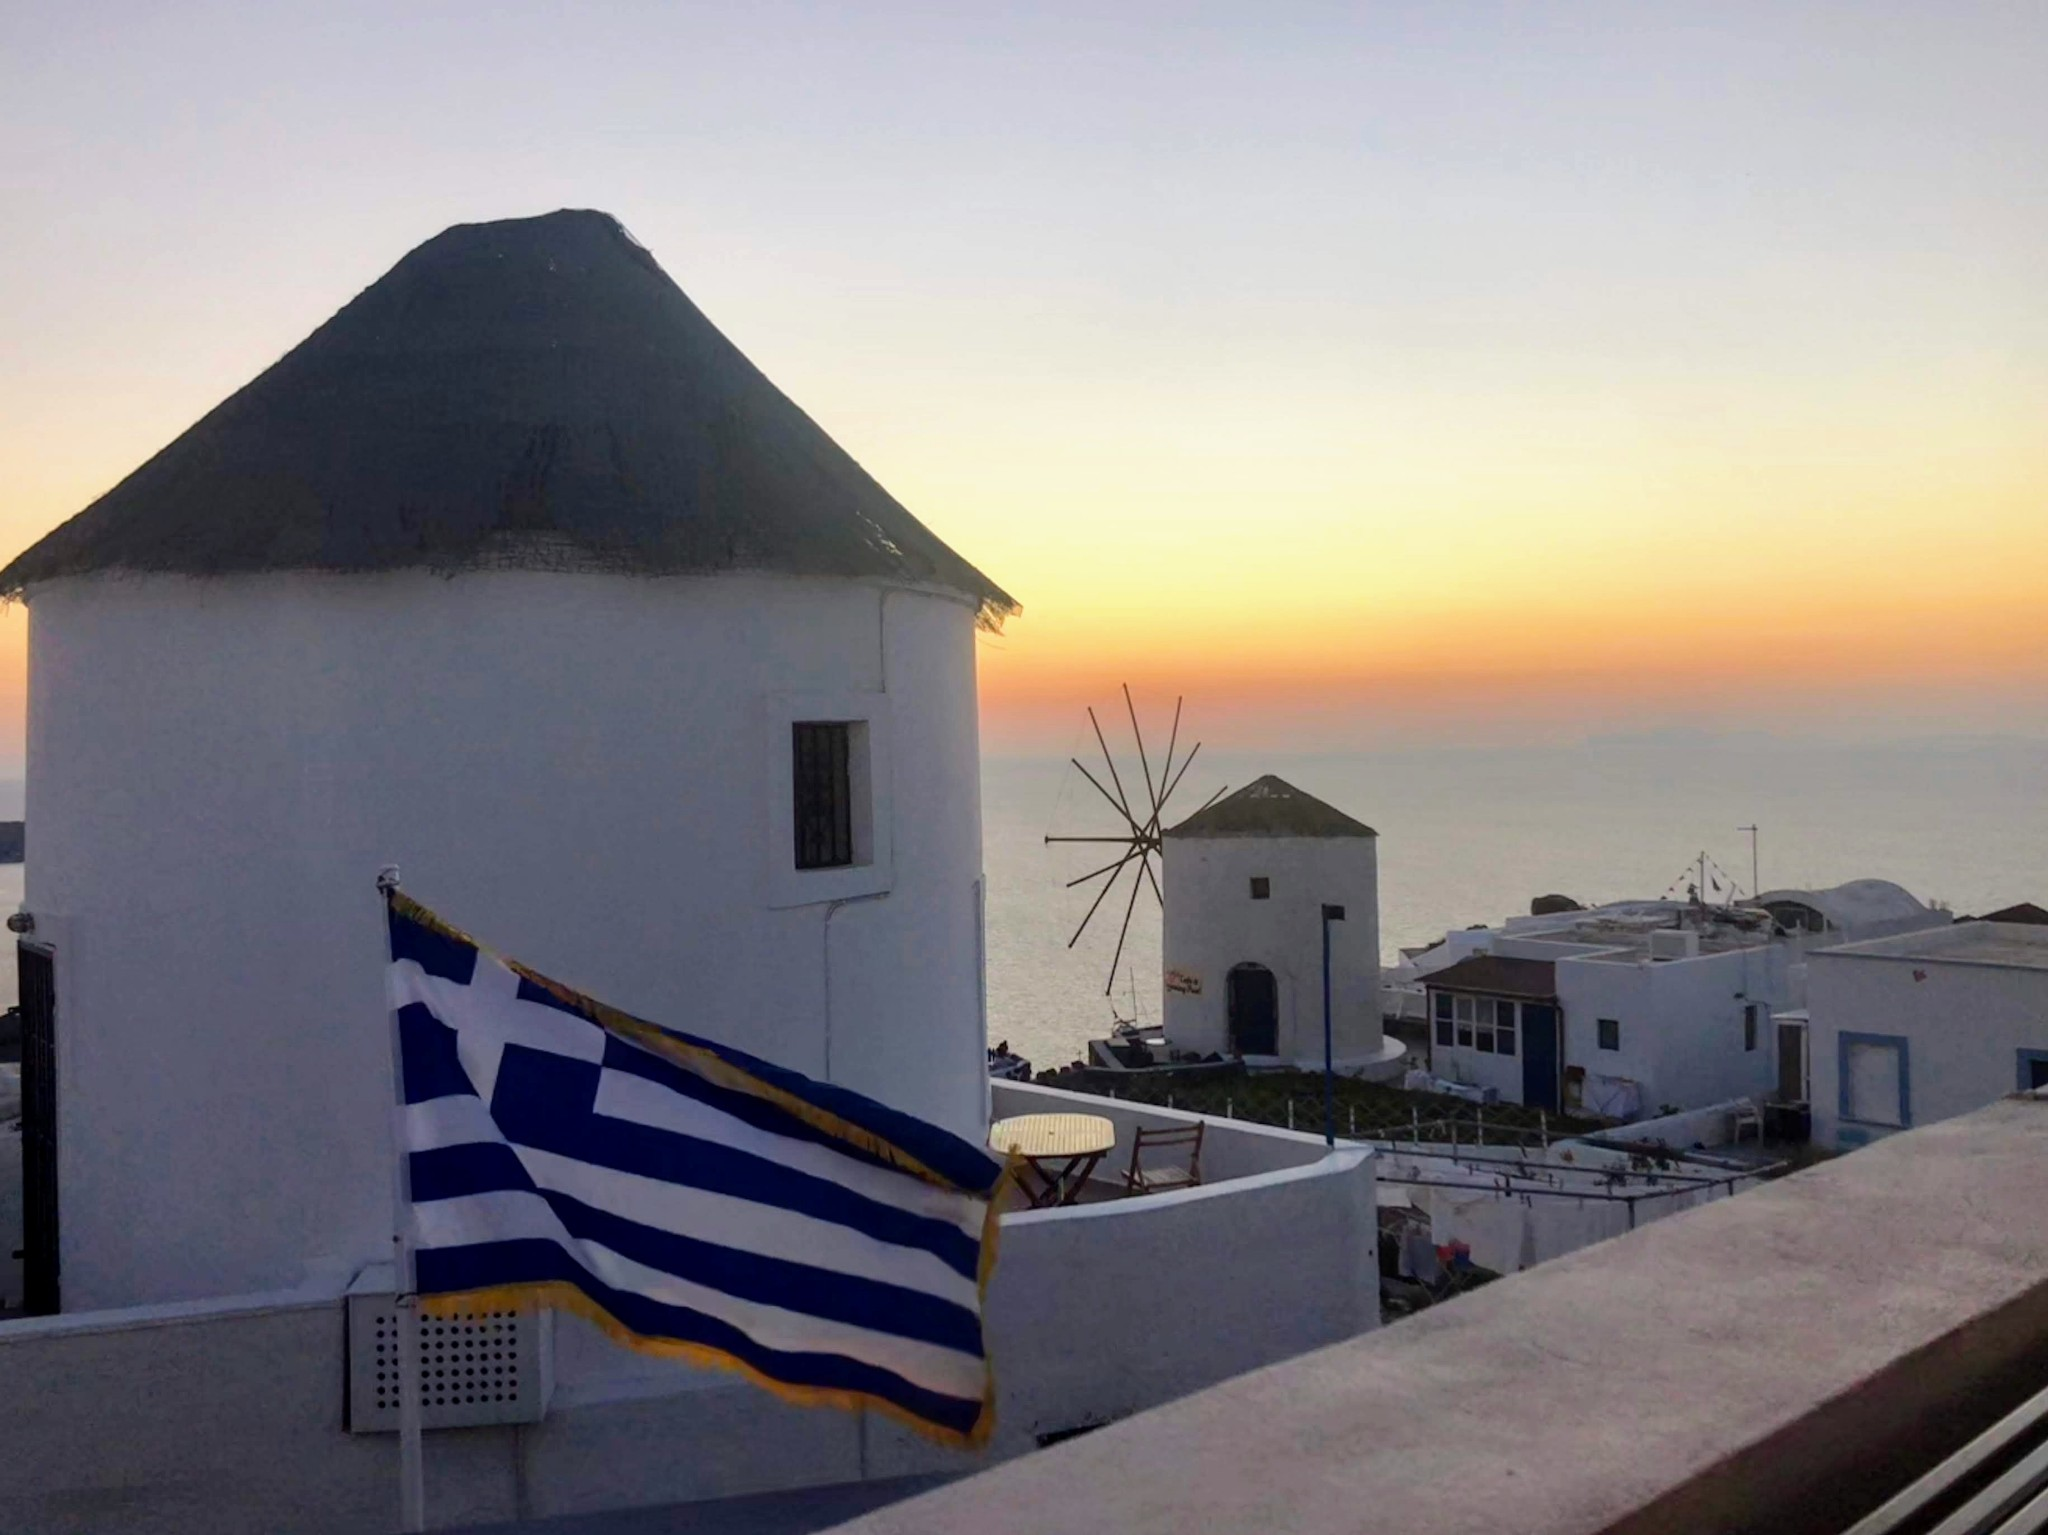 Elinikon Restaurant View Famous Oia Windmill during the sunset - Honeymoon Part 2 - Oia in Santorini Greece is beautiful with its pretty caldera view, sunsets, windmills and quaint pedestrian streets, we headed here for our Honeymoon Part 2! - Greek Island, Europe - Veritru